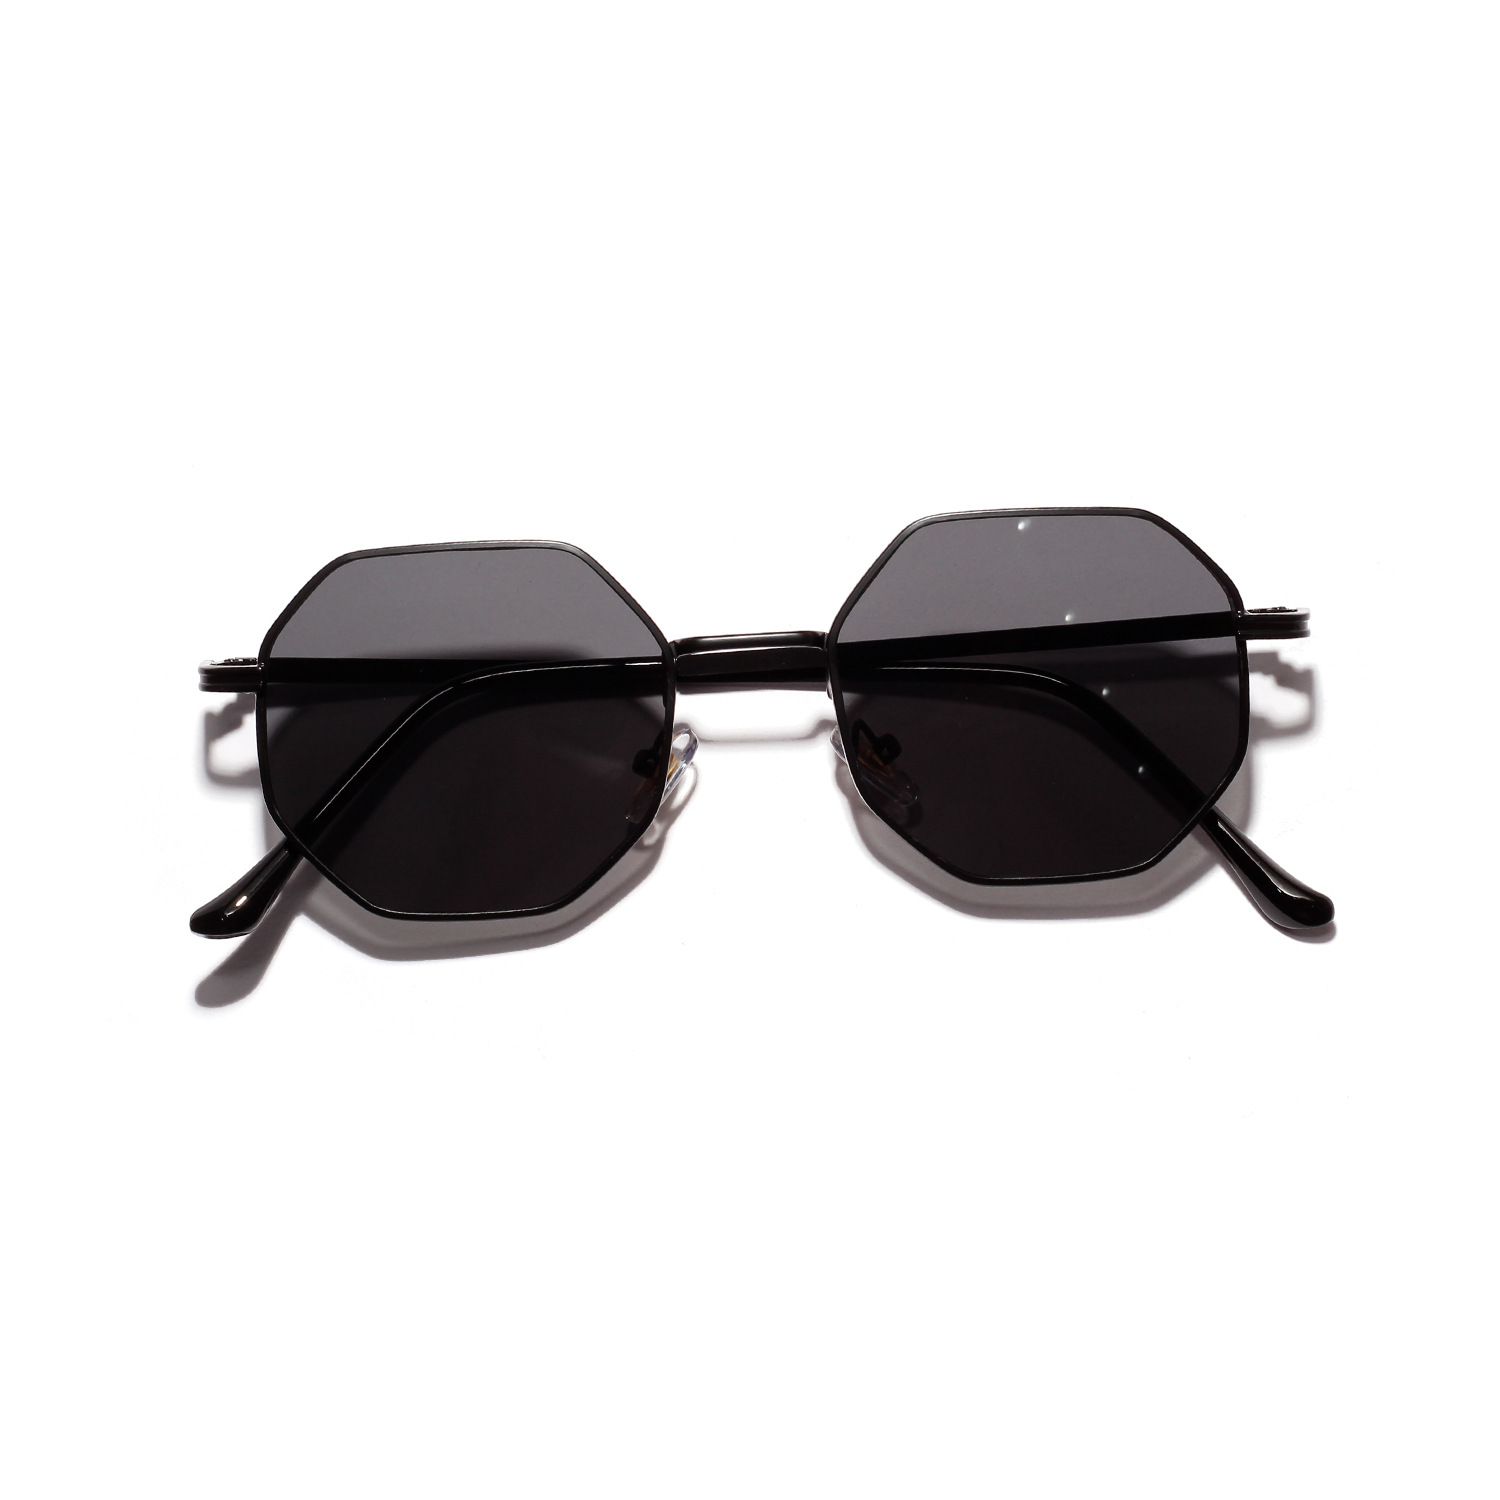 Classy Heptagon Metal Sunglasses for Pool Party